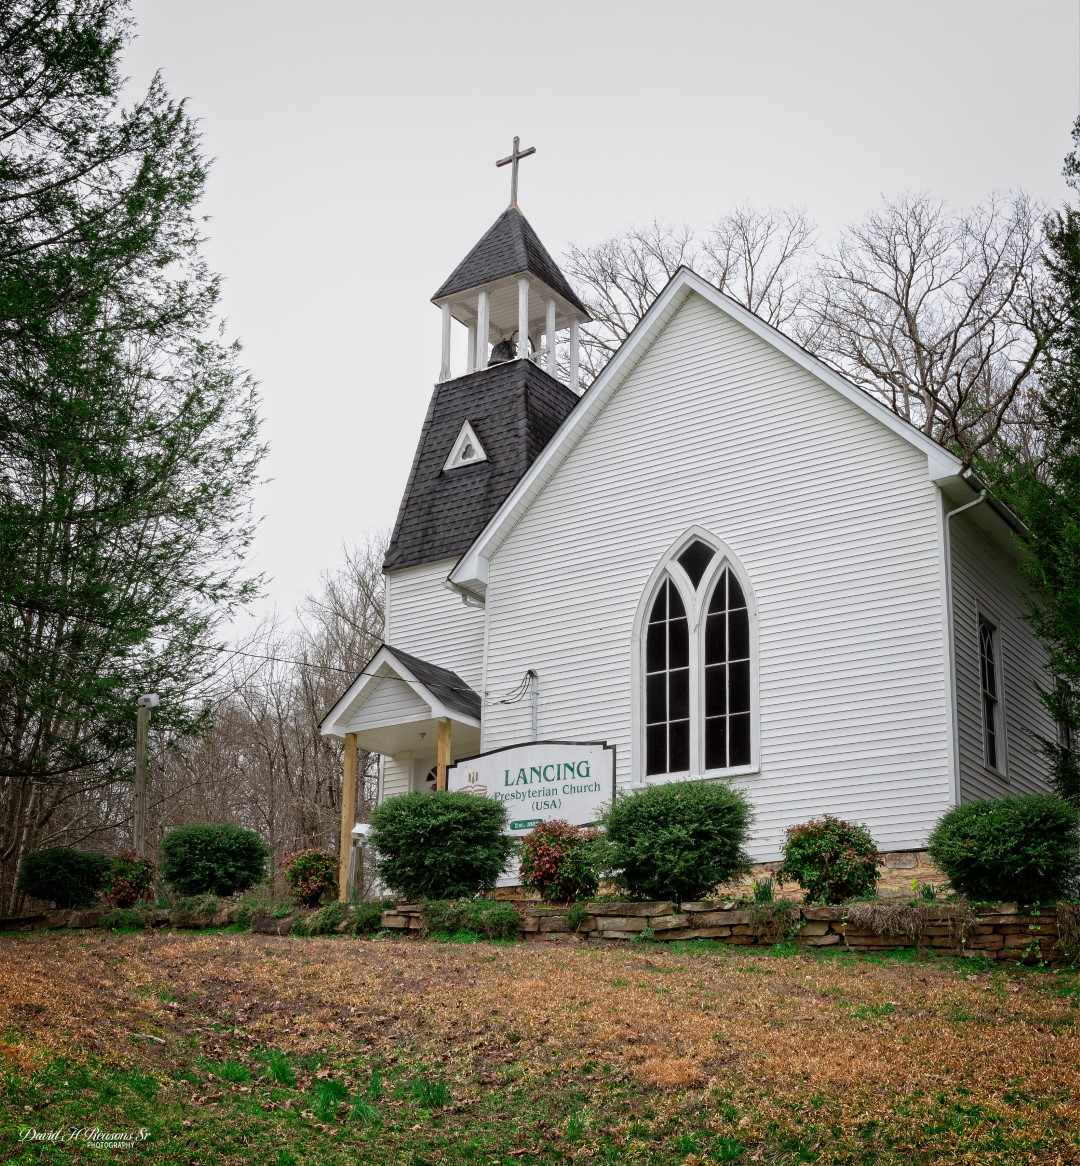 Lancing, TN, founded in 1887